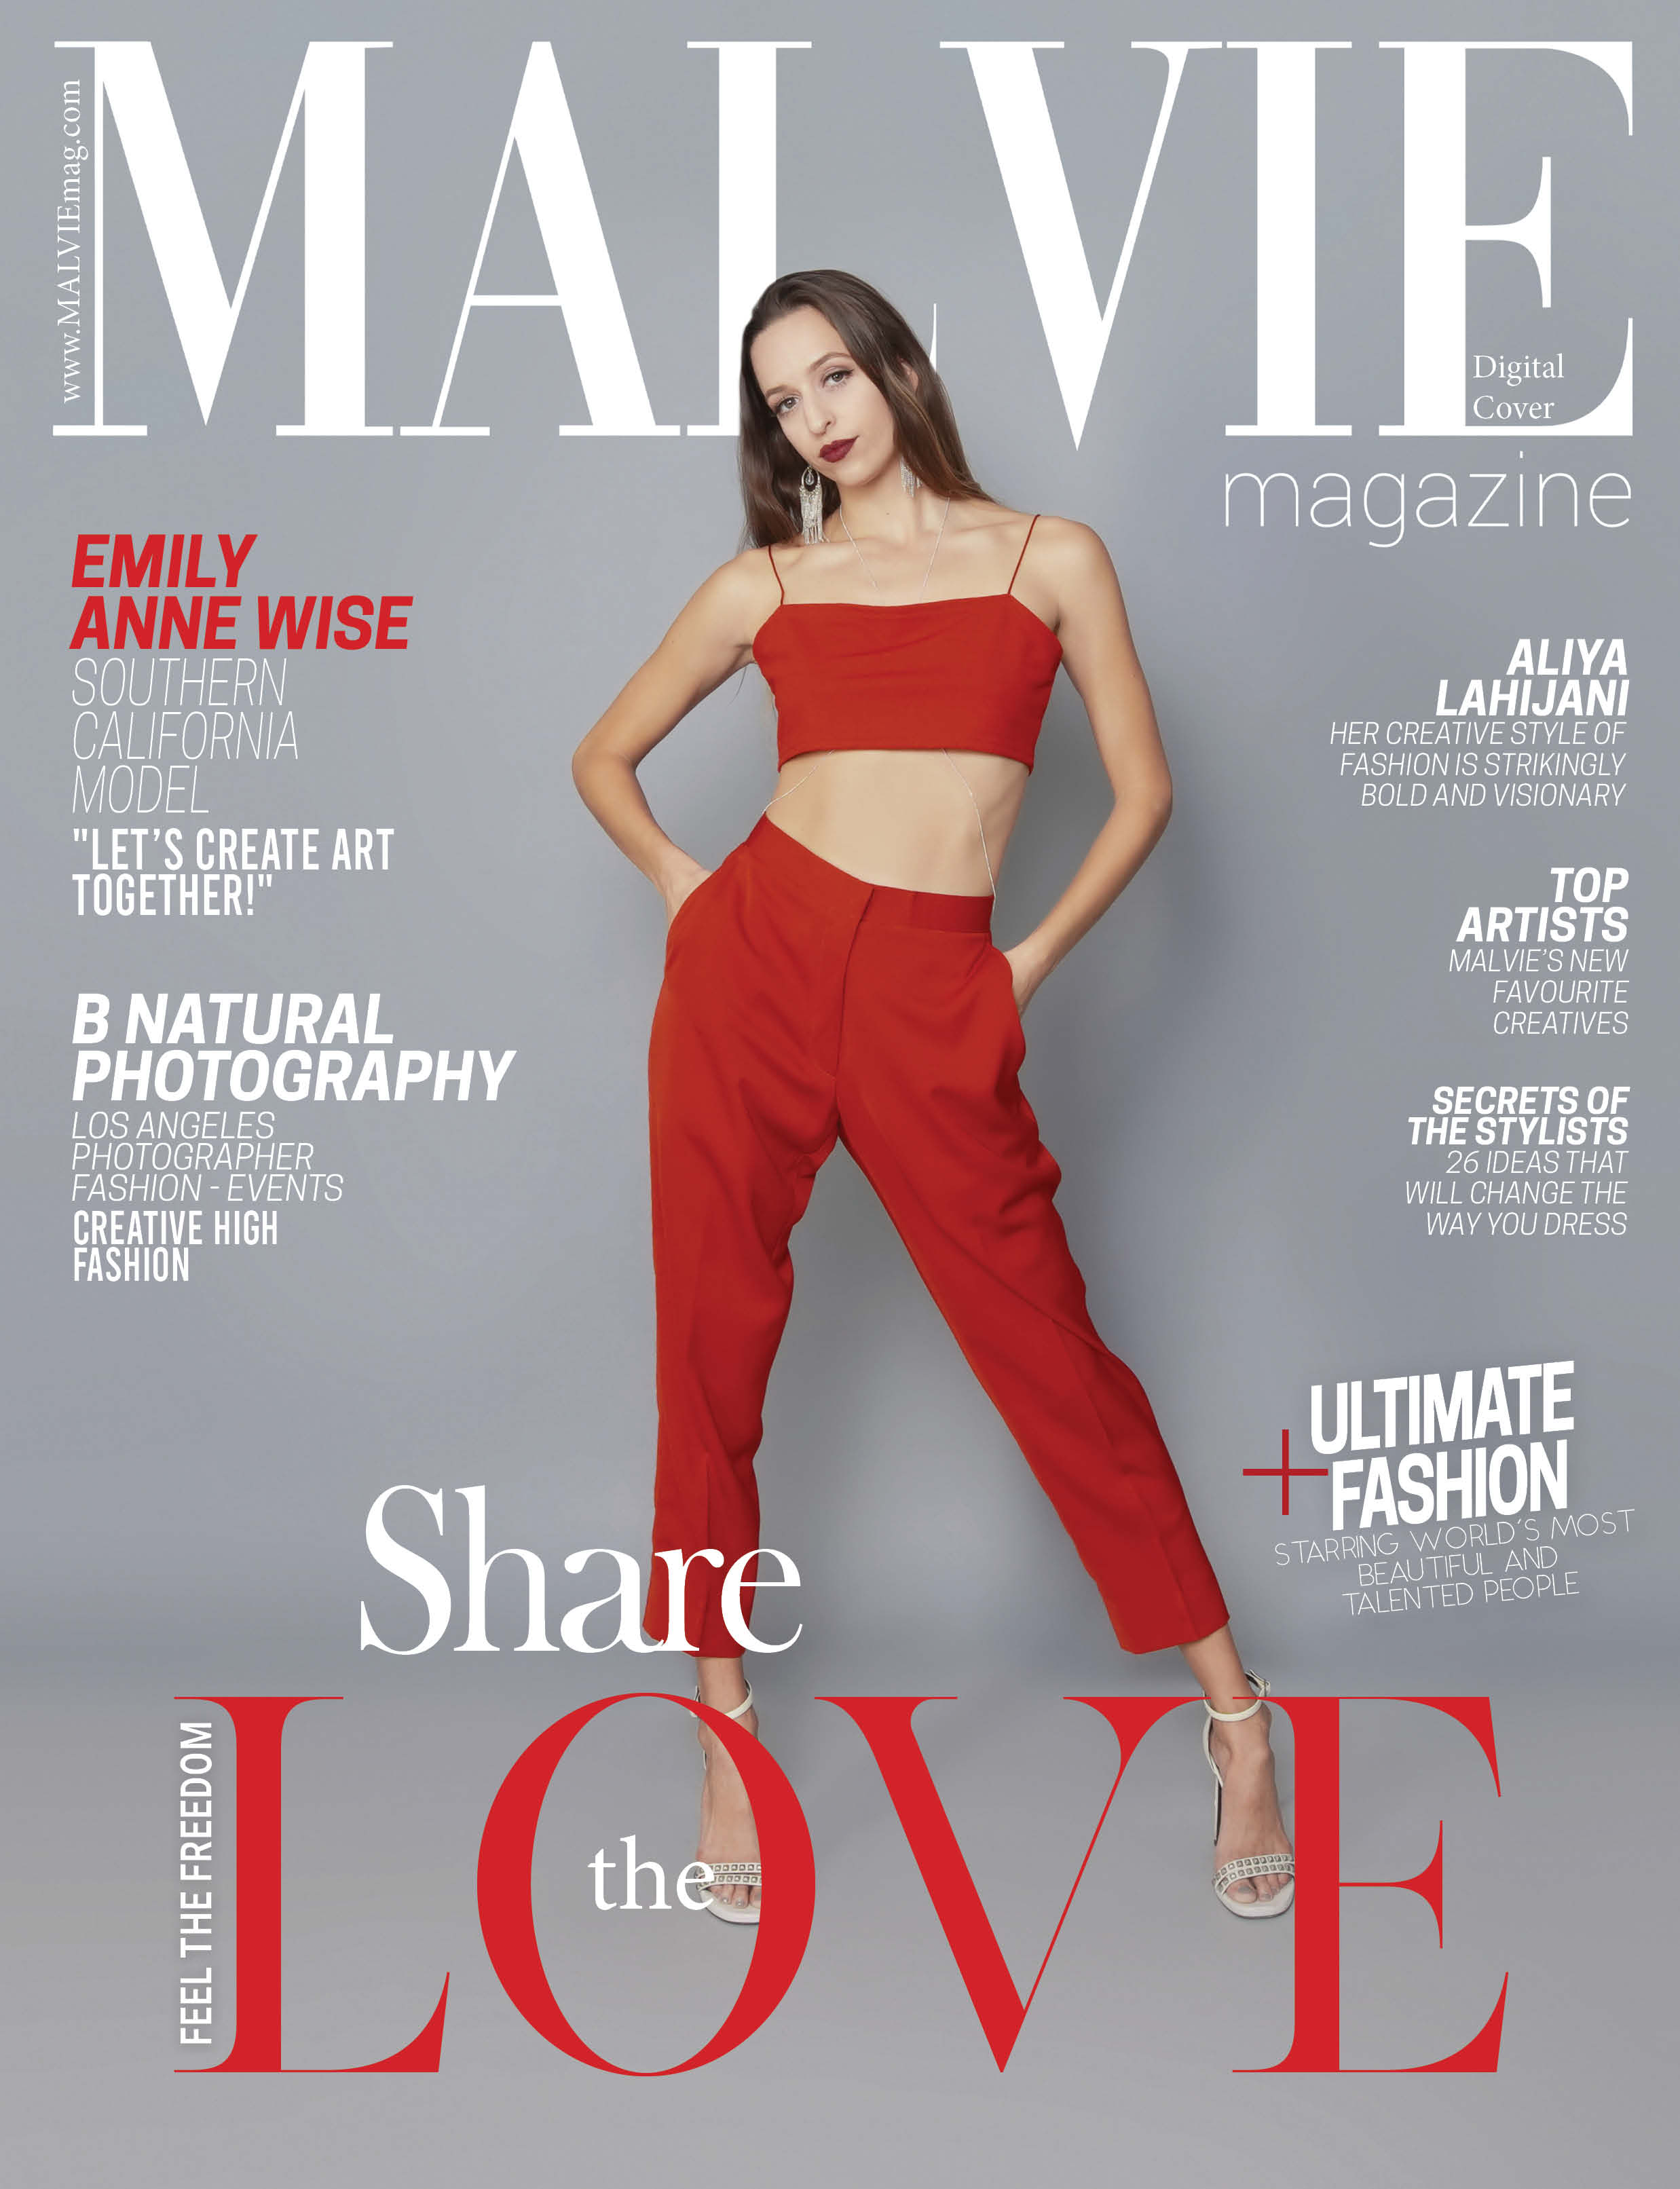 Creative Edgy High Fashion! Digital Cover MALVIE French Magazine